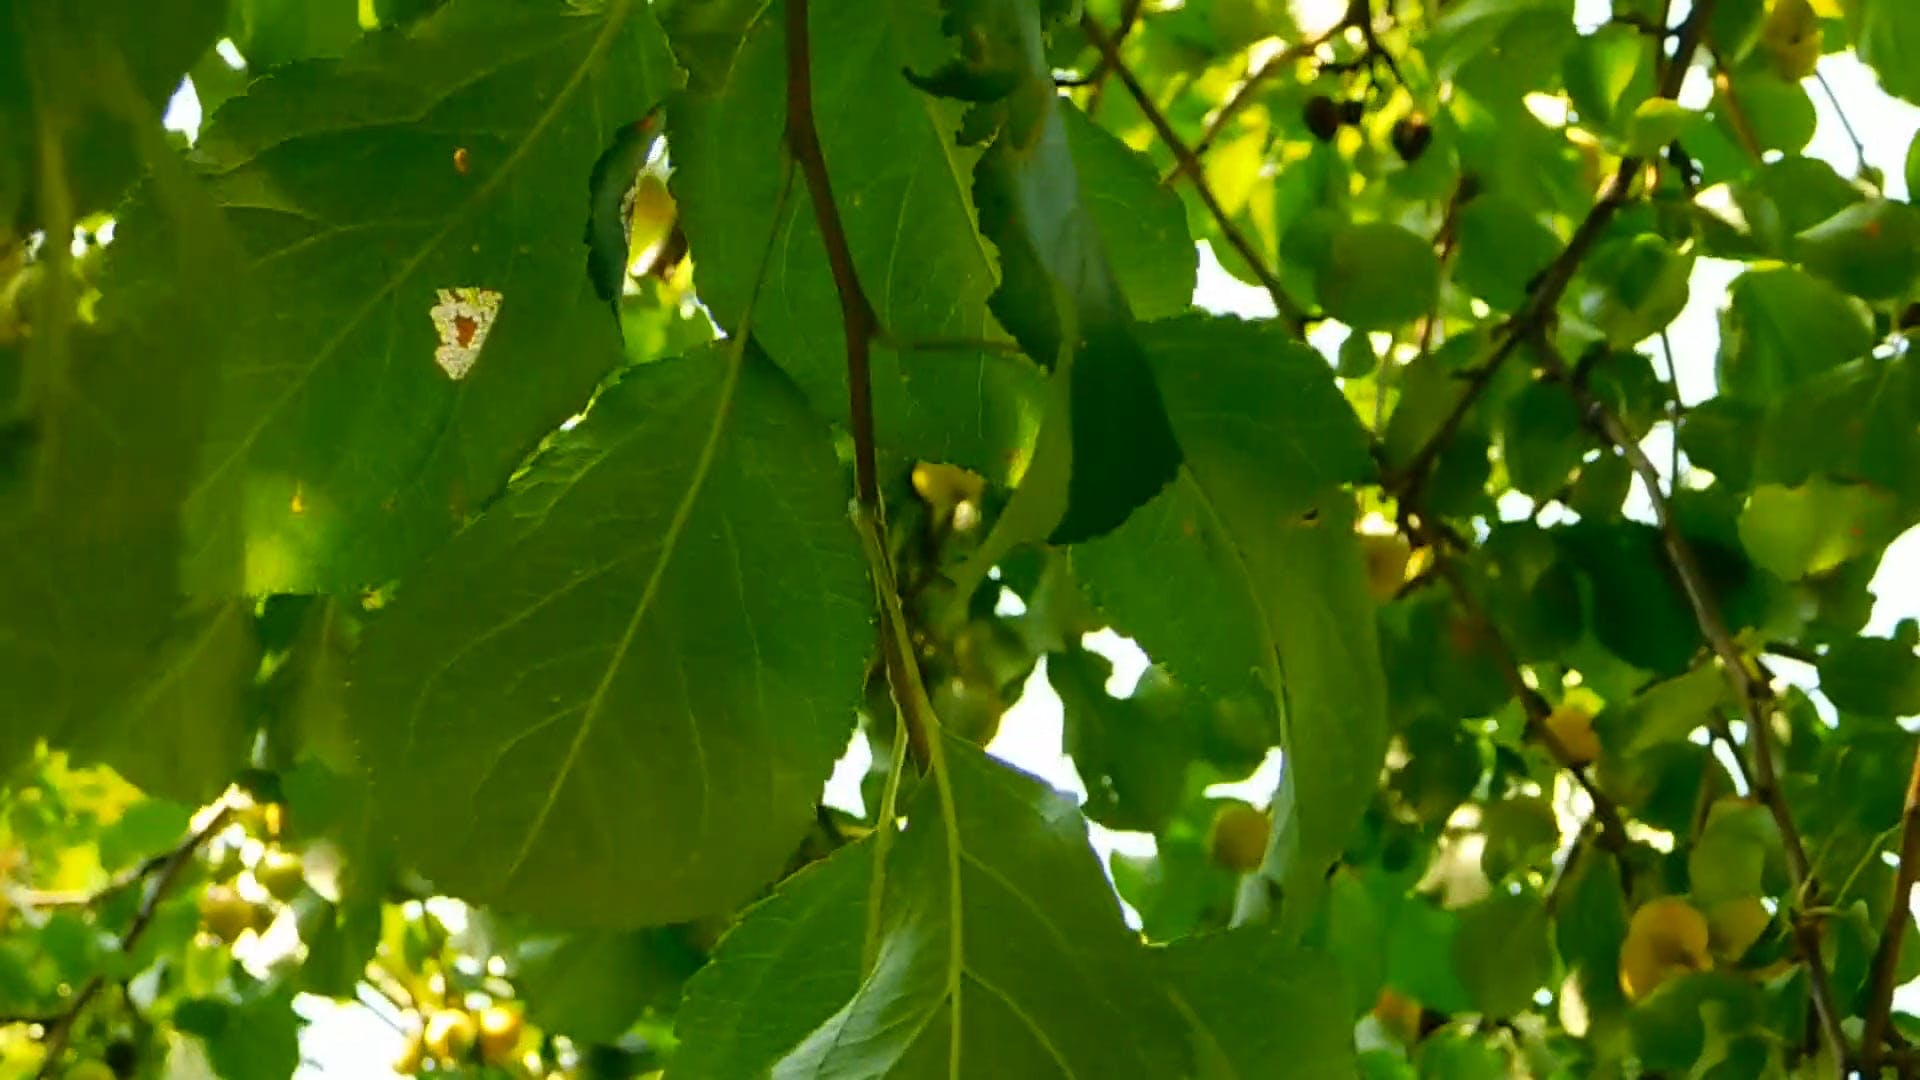 Green Leaves On A Tree Branch